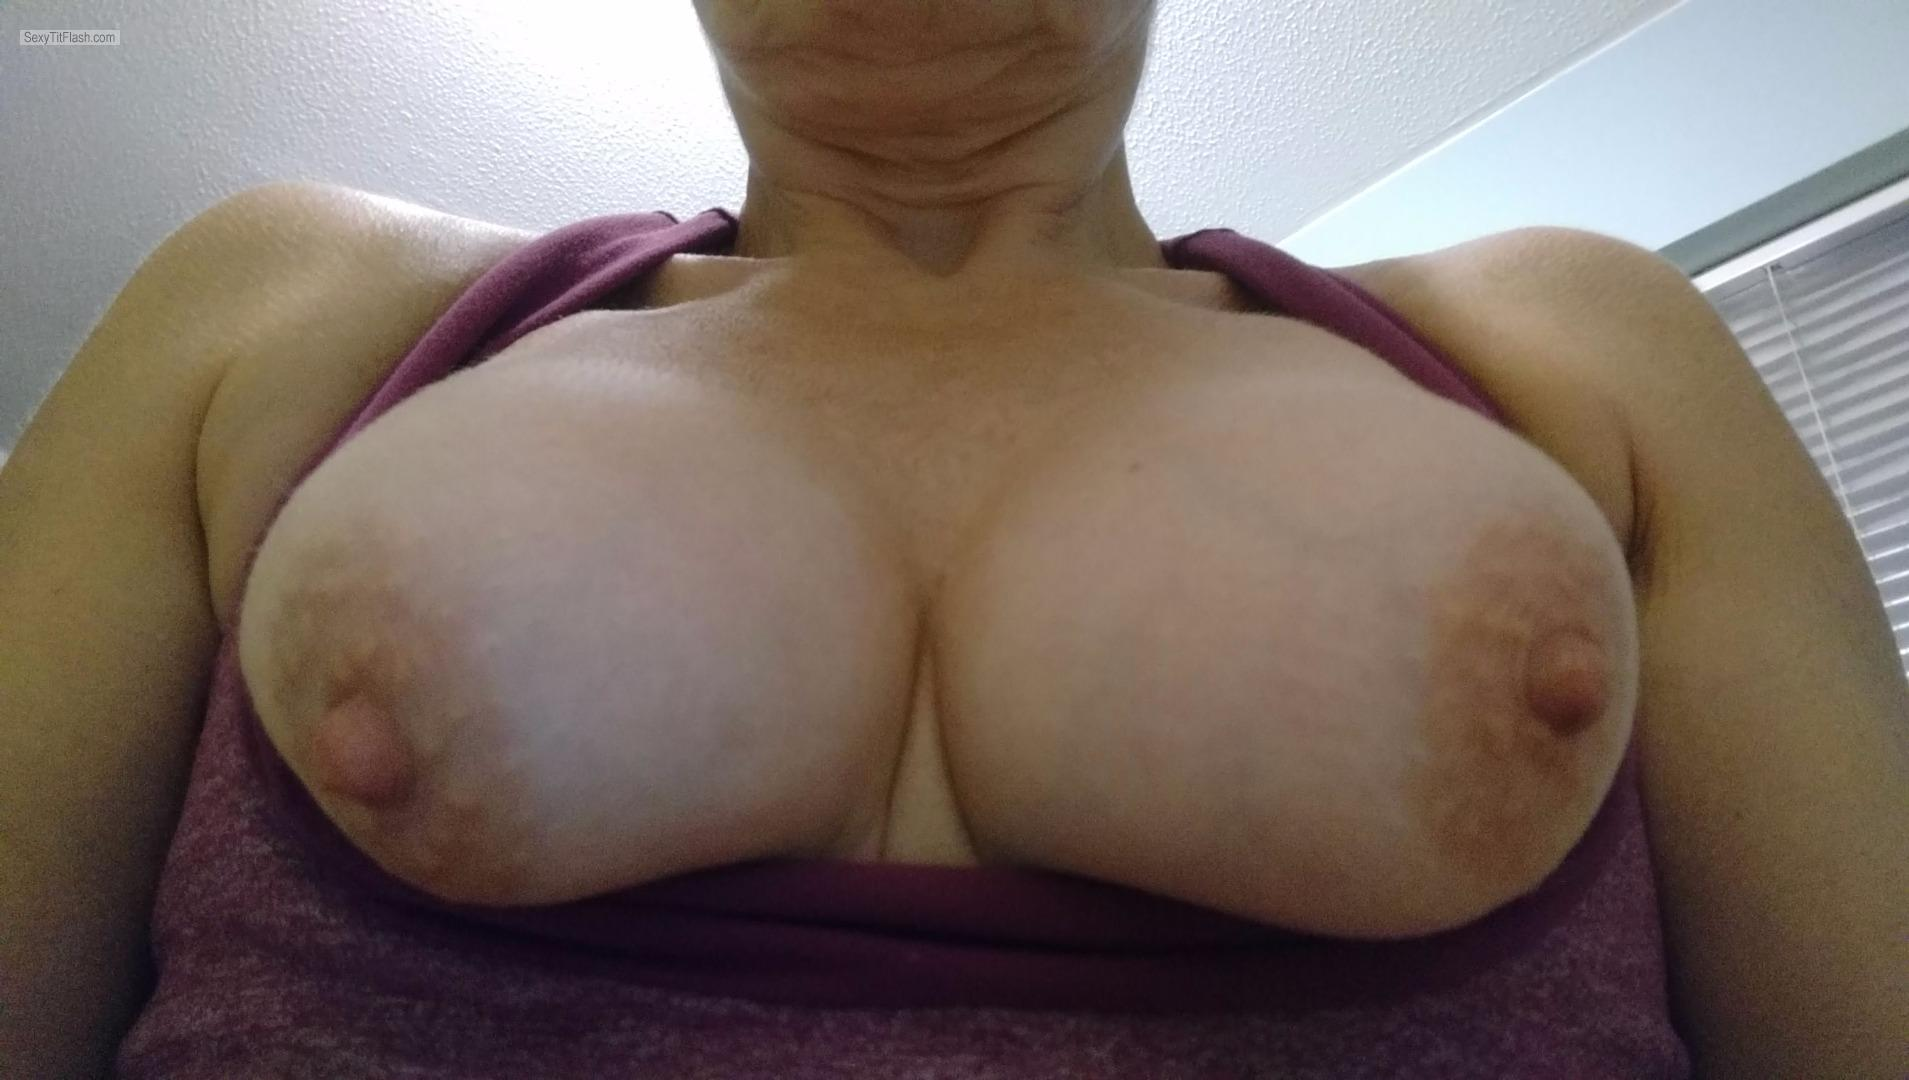 Tit Flash: My Small Tits - A Wife from United Kingdom